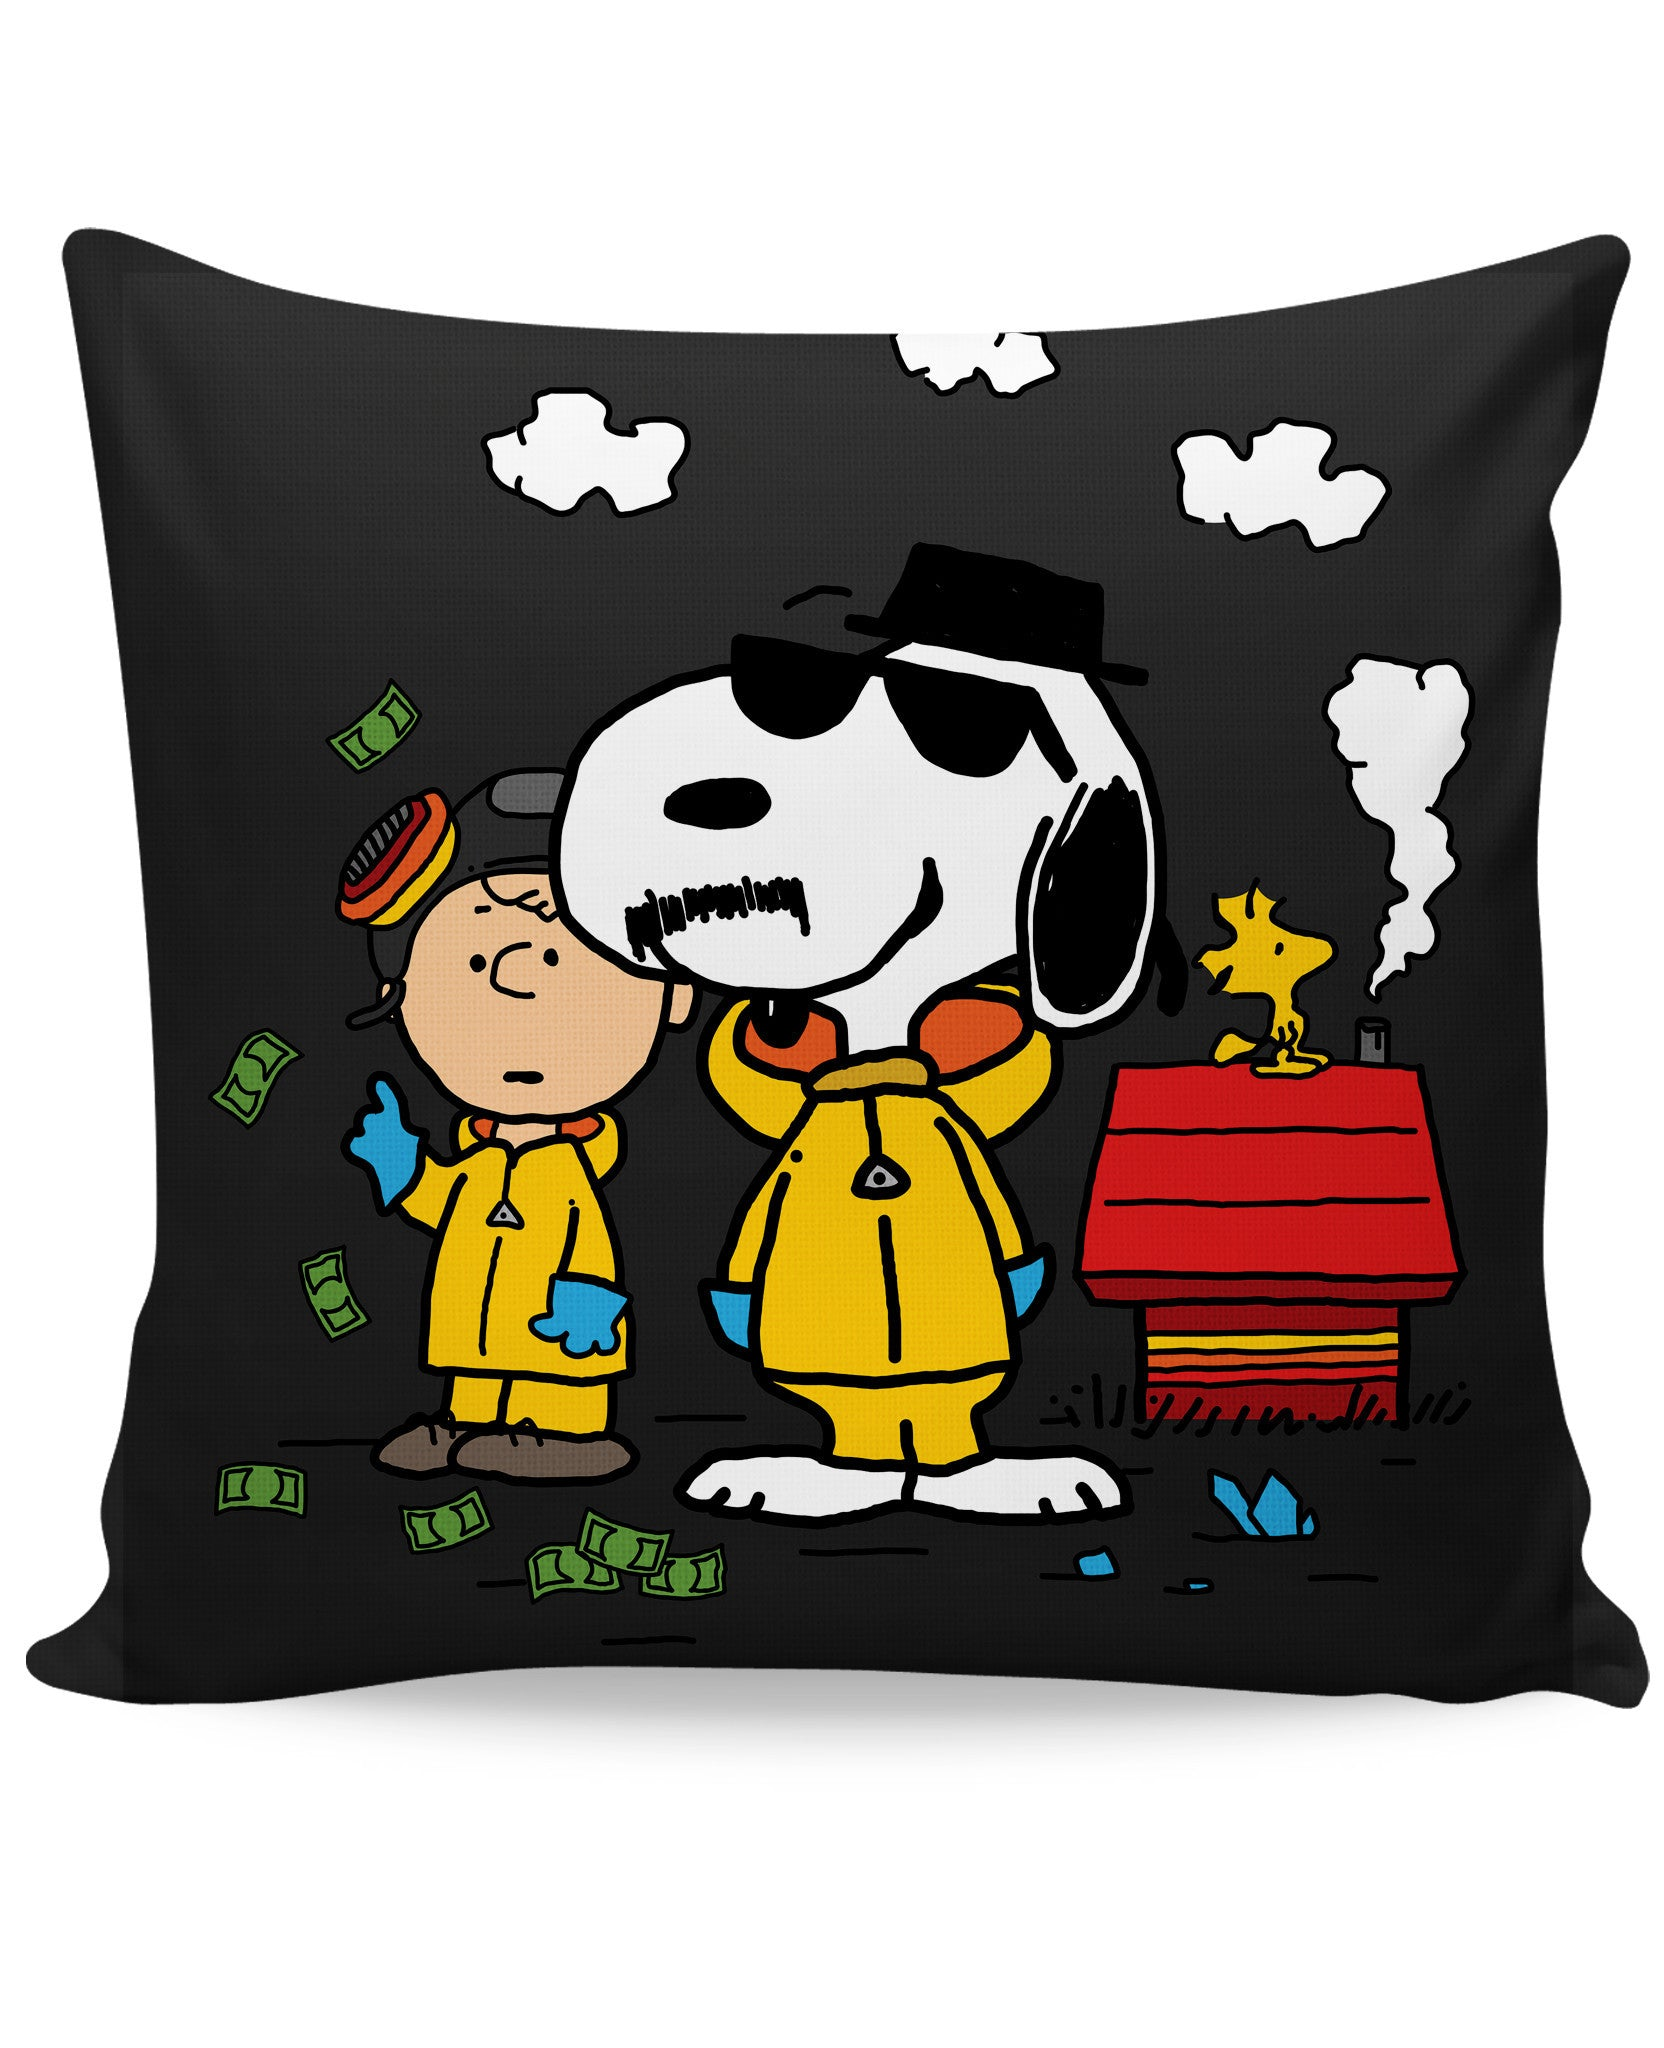 Breaking Snoopy Couch Pillow Everprime Clothing